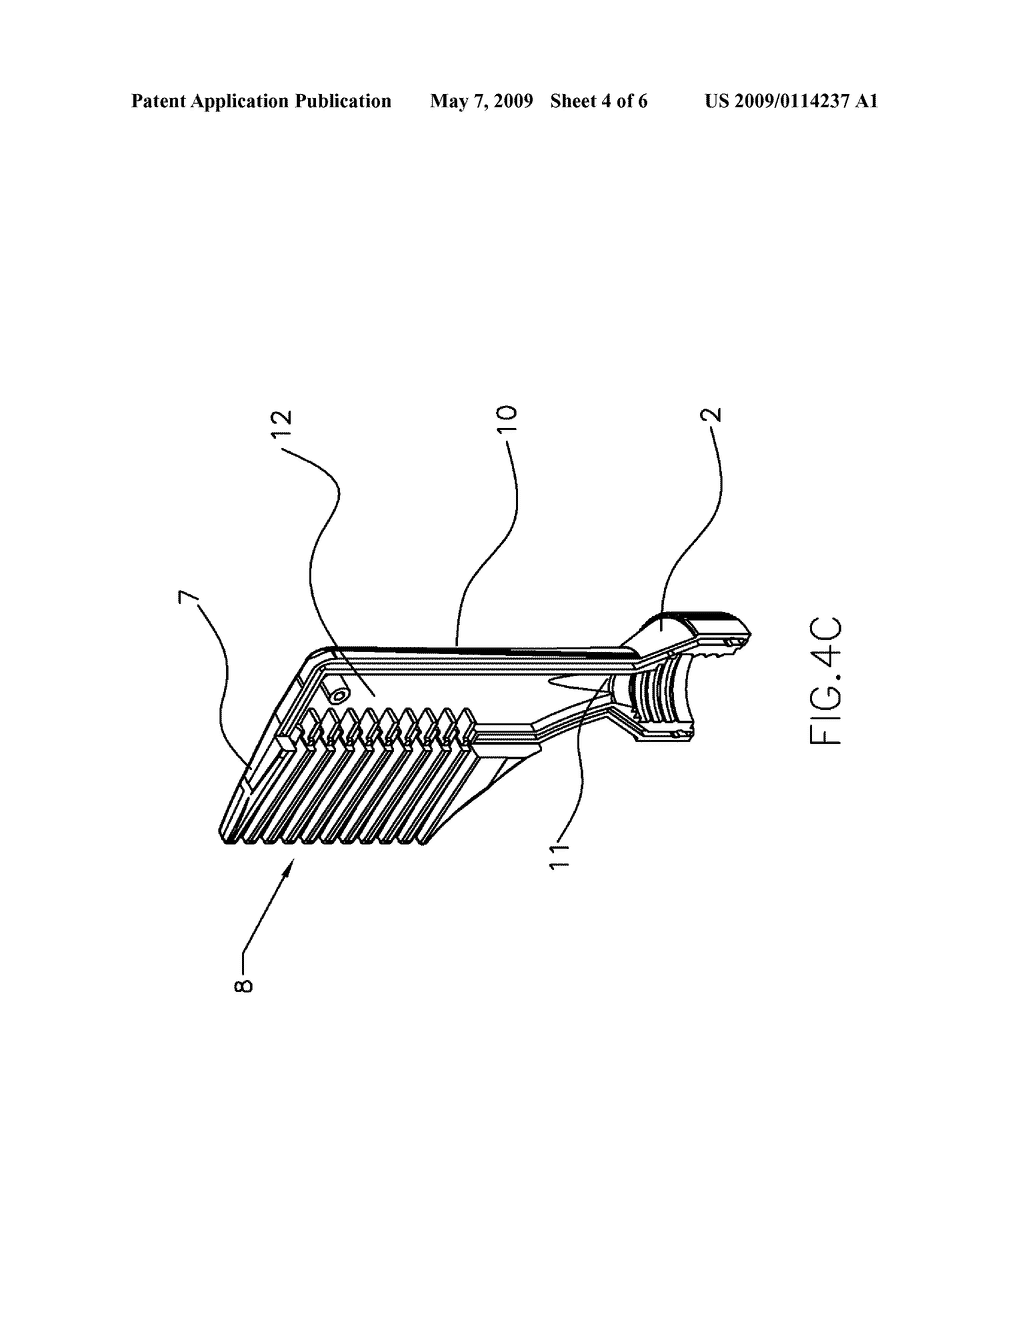 AIR OXIDATION HAIR DYE APPLICATION SYSTEM AND METHOD FOR COLORING HAIR USING THE SAME - diagram, schematic, and image 05